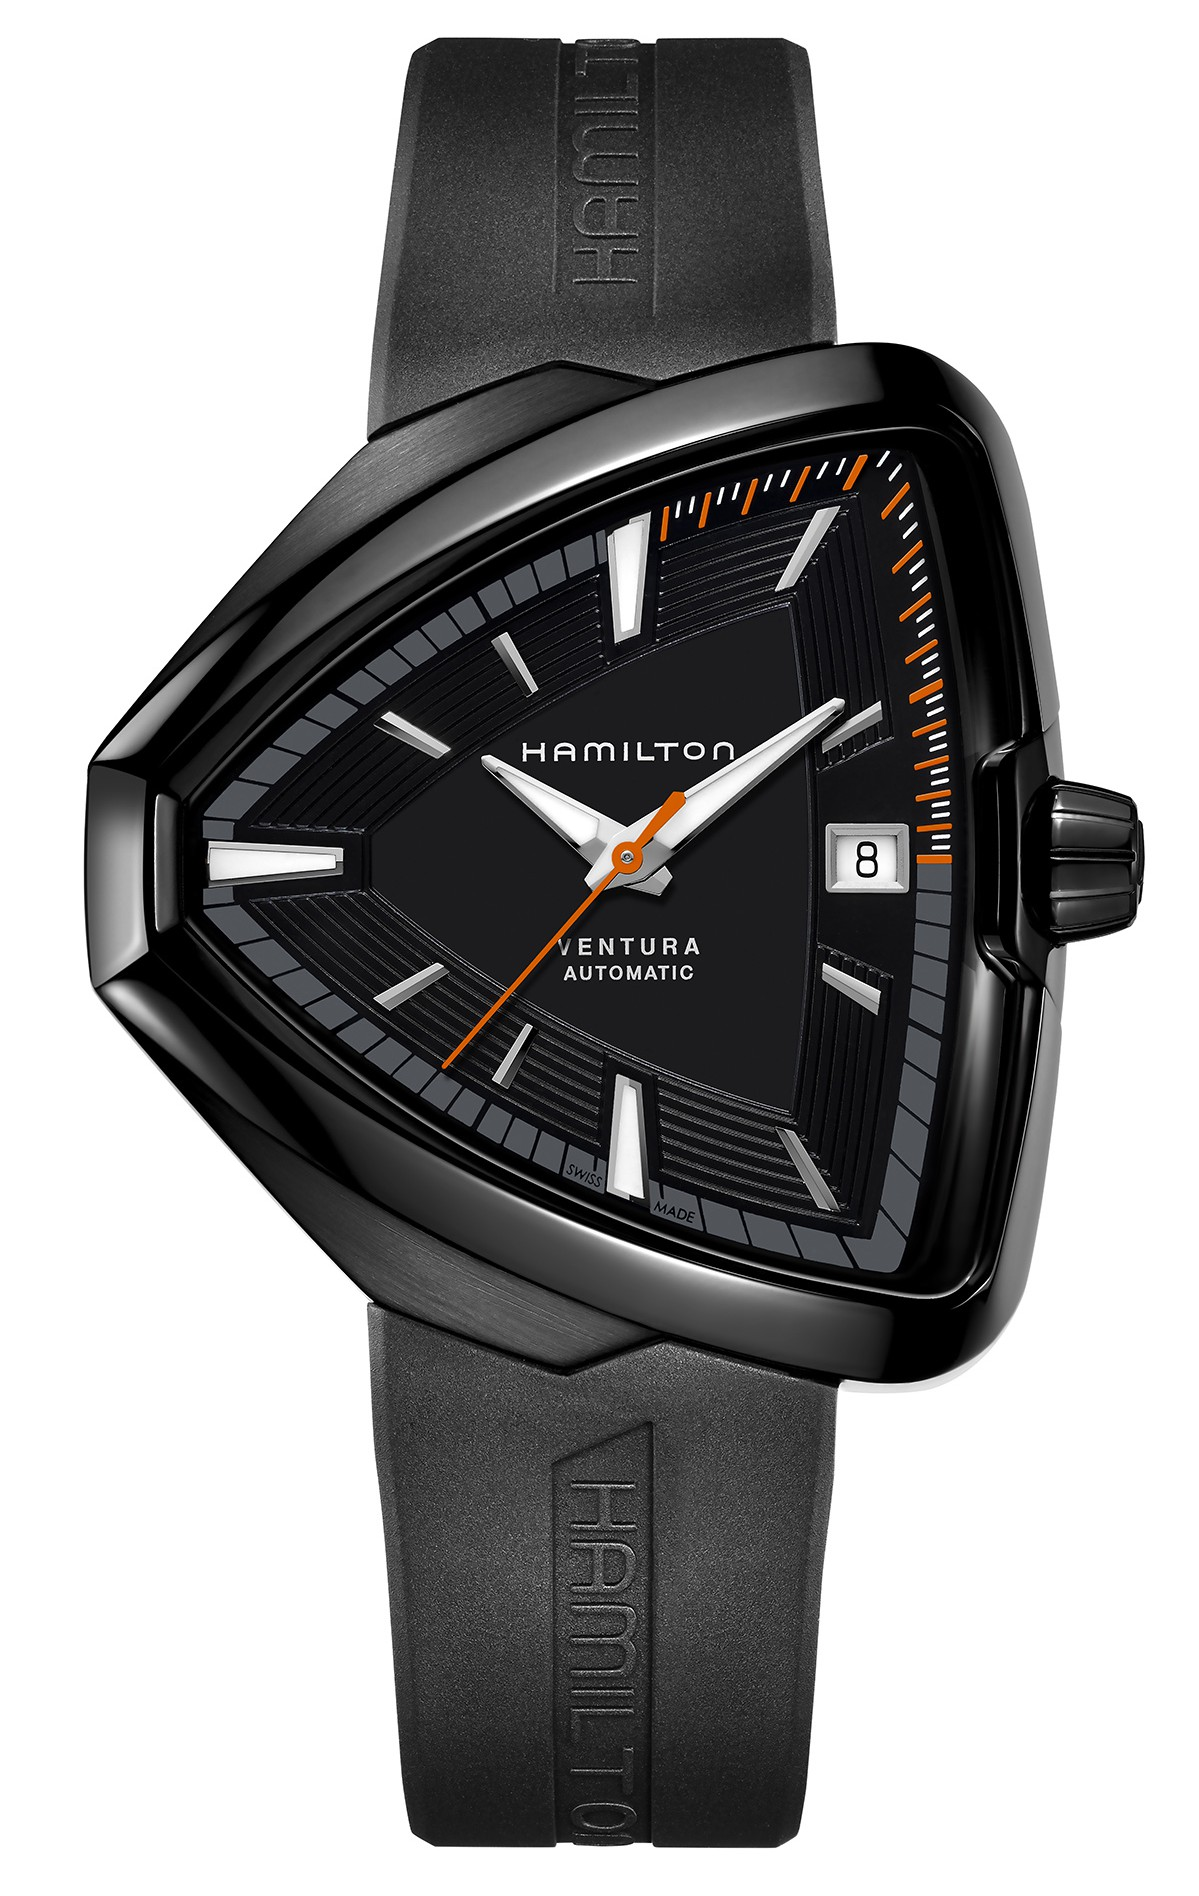 The Hamilton Ventura Automatic, black PVD coated.